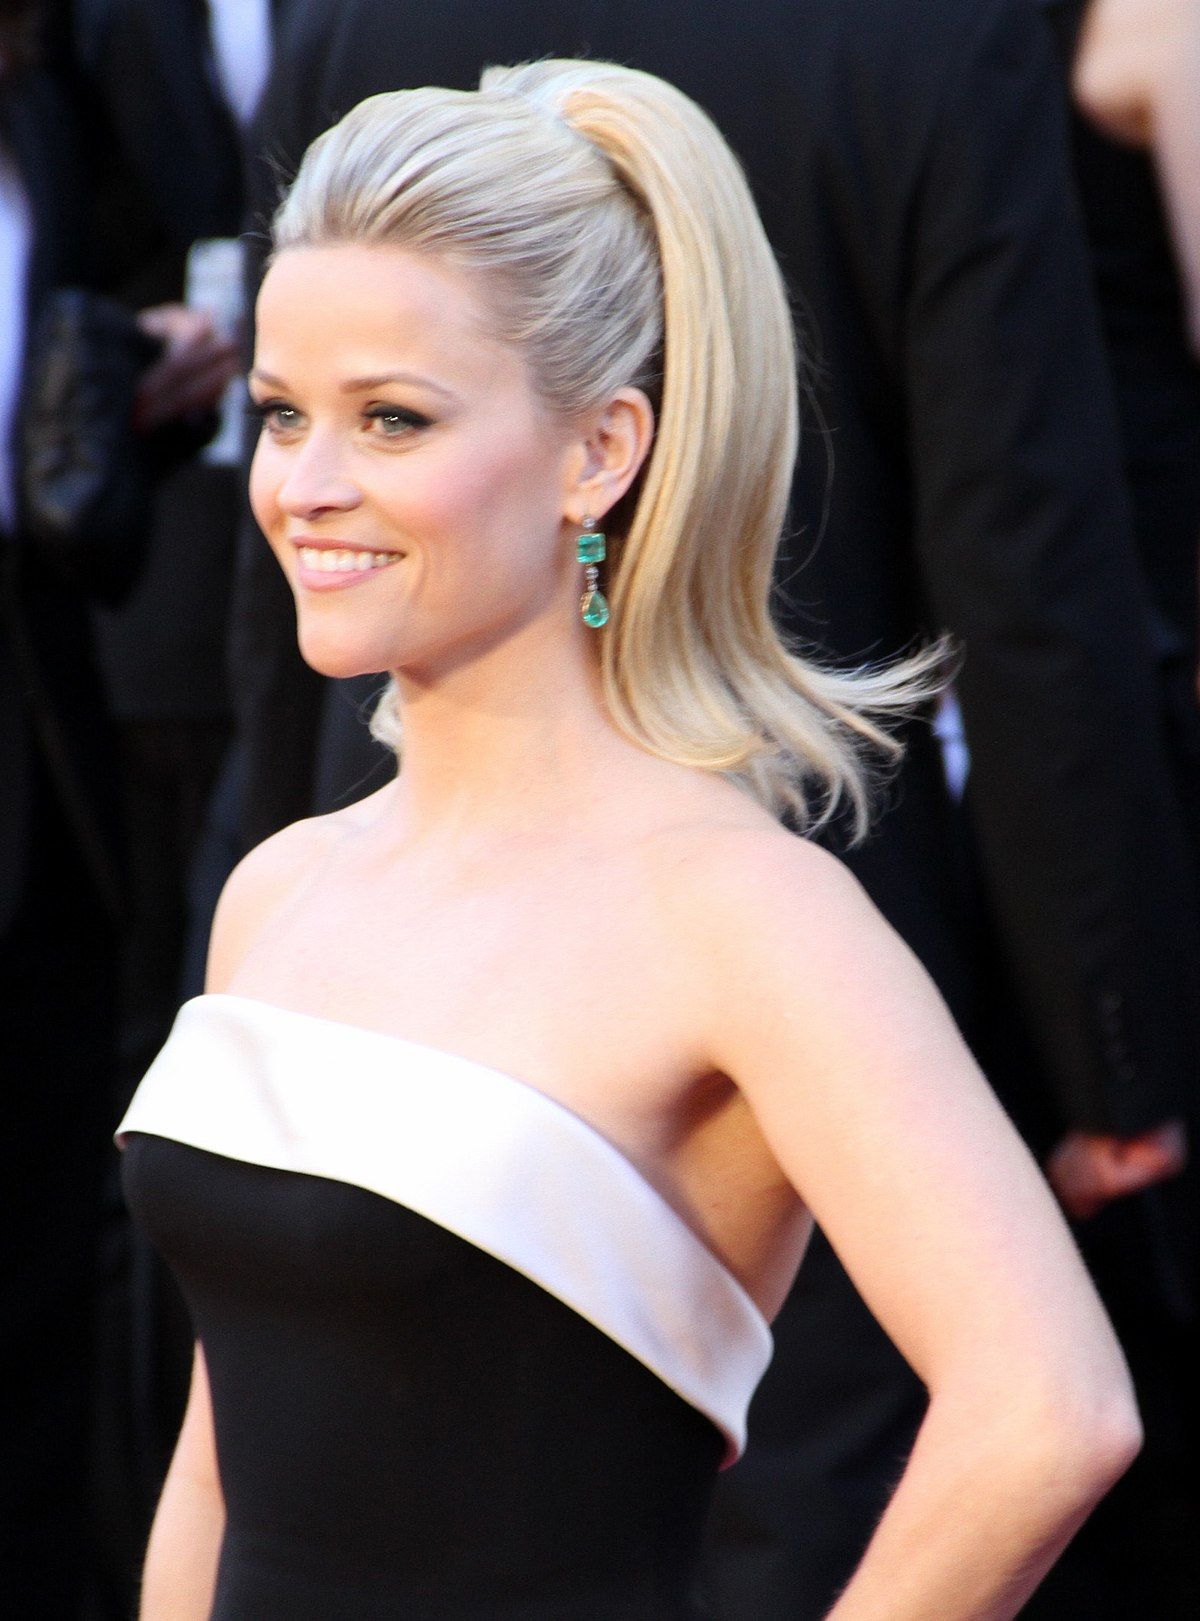 Reese Witherspoon - Wi... Reese Witherspoon